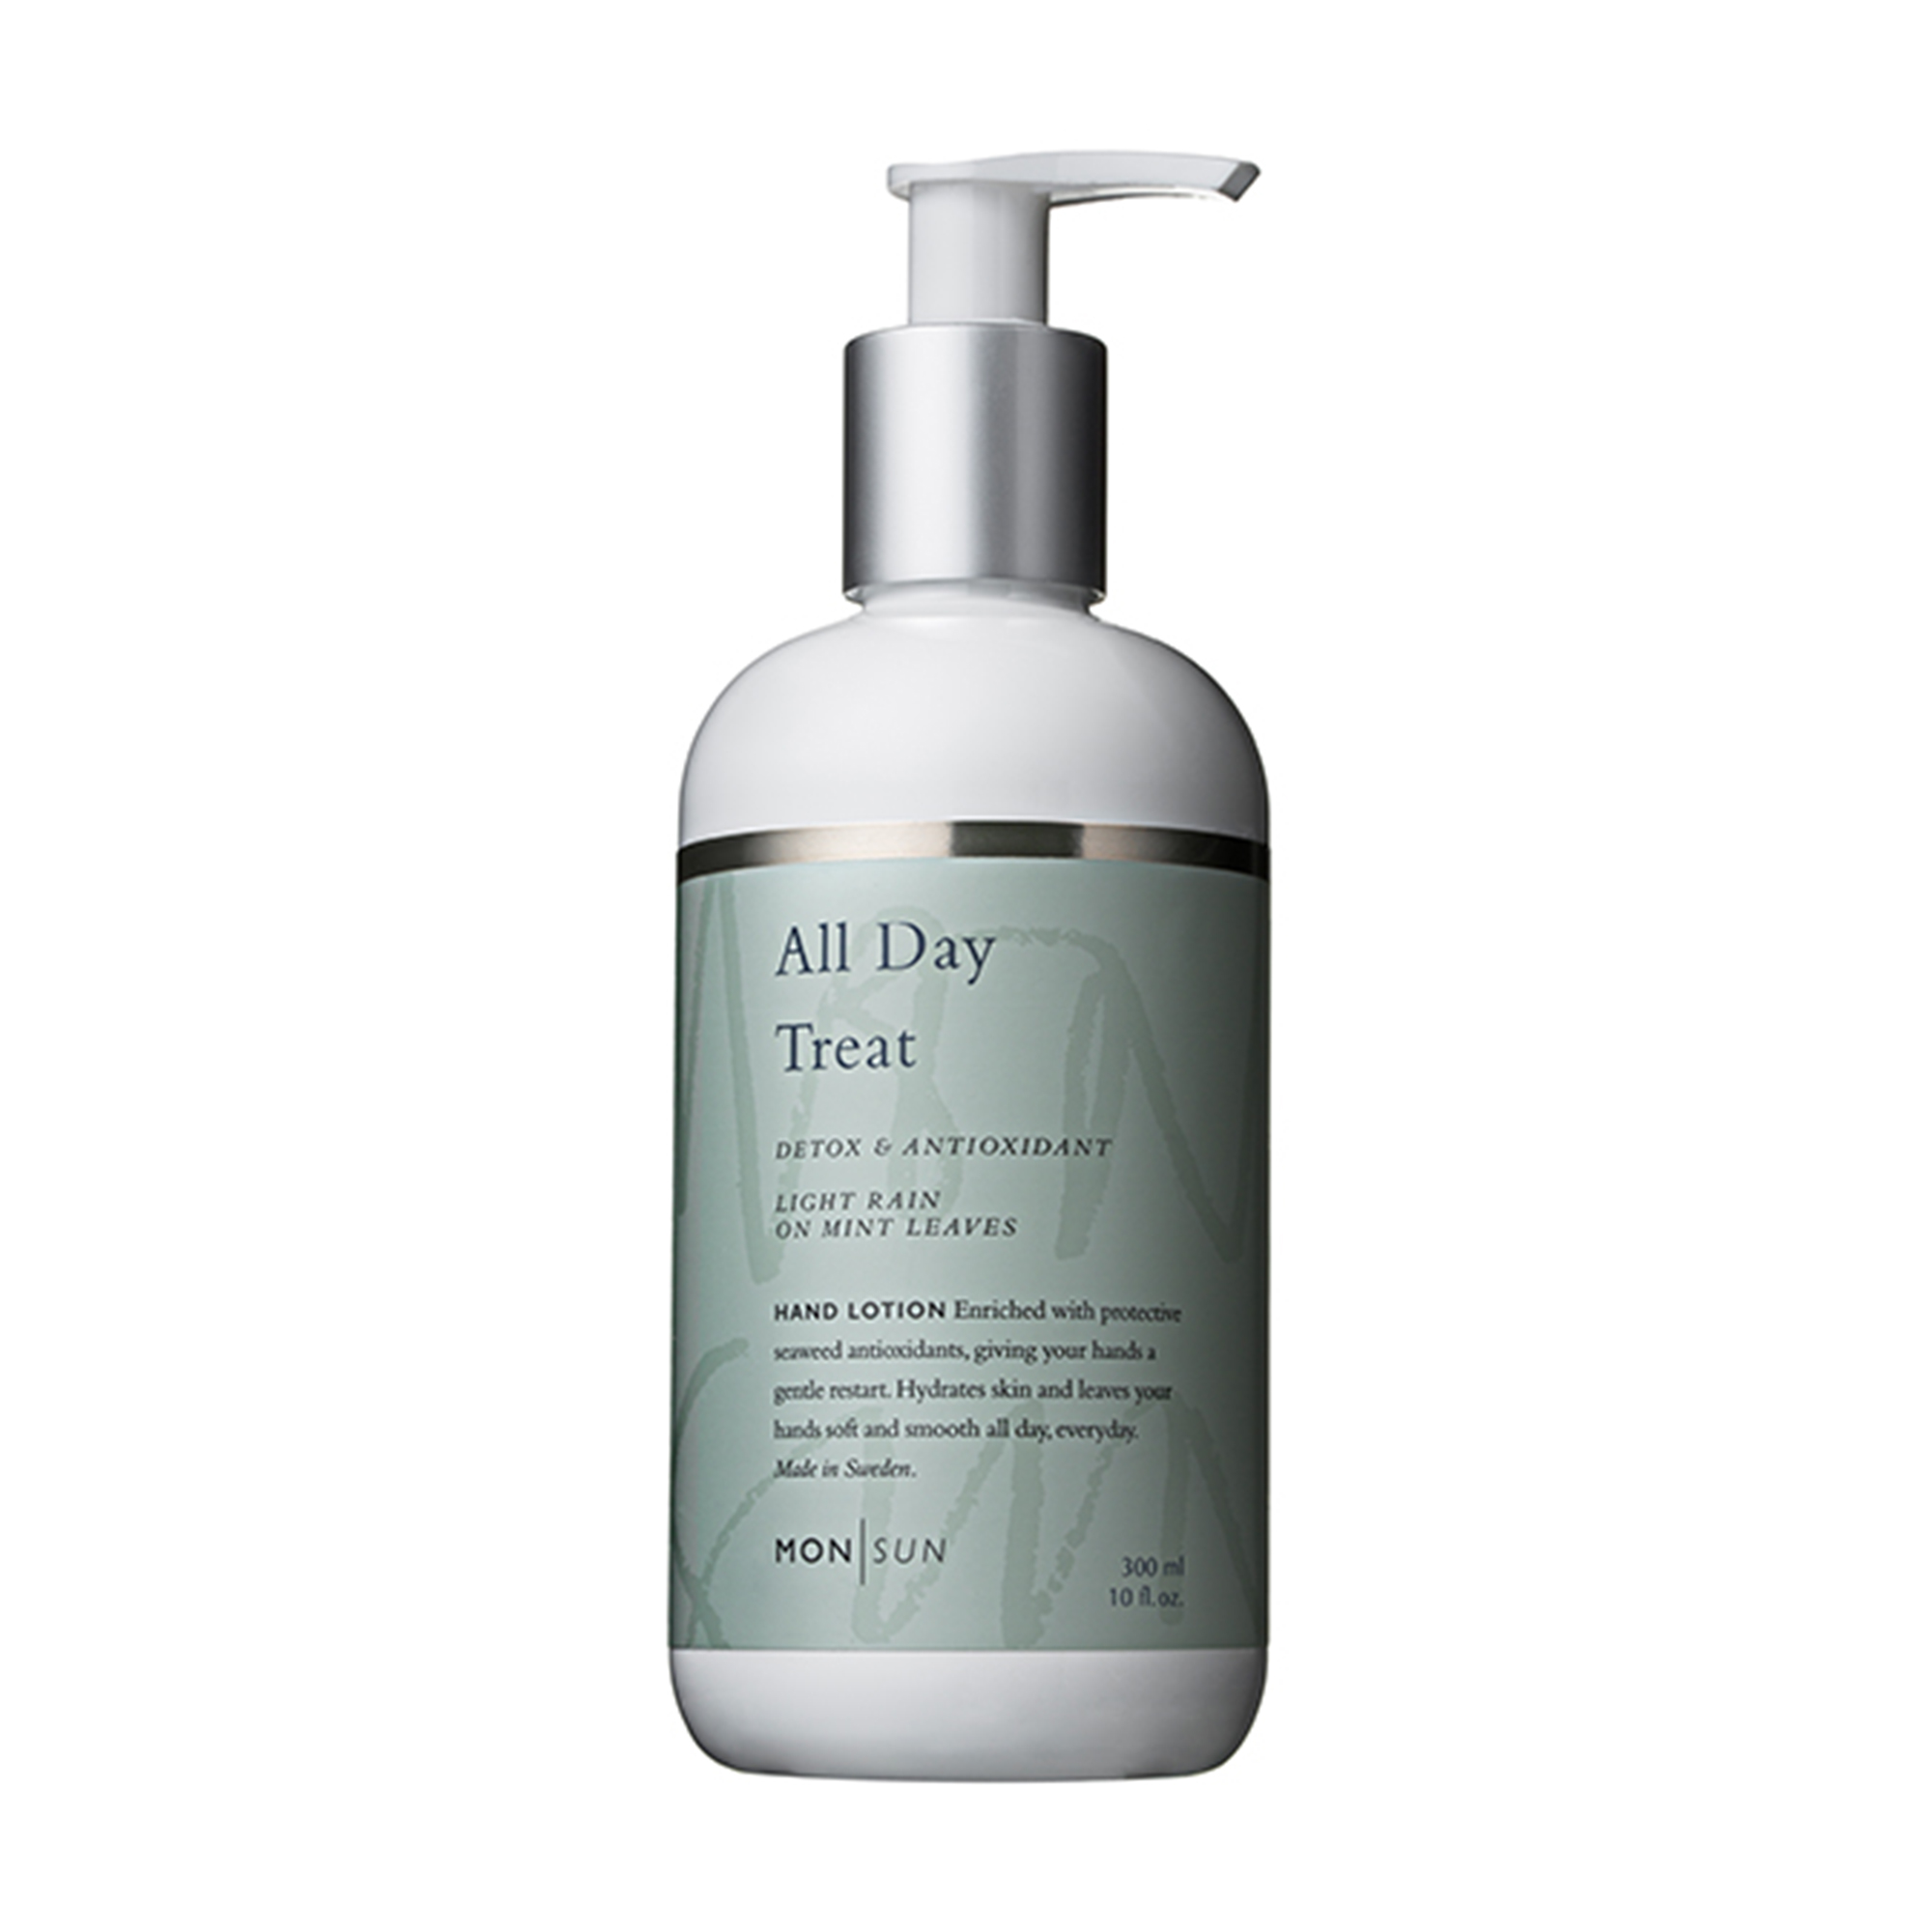 All Day Treat Detox & Antioxidant Hand Lotion 300 ml